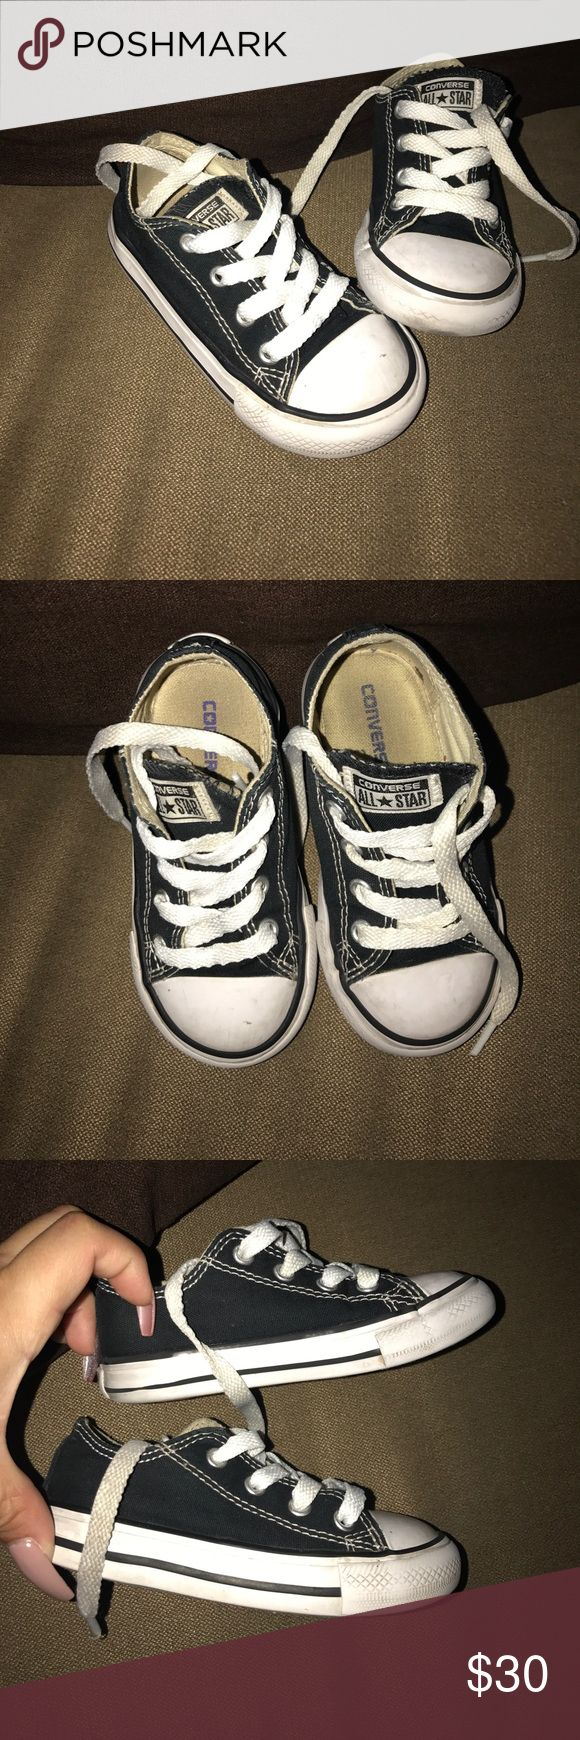 Toddler boy converse tennis shoes boy Toddler boys size 7 tennis shoes. Black and white preowned. All sales final. Converse Shoes Sneakers